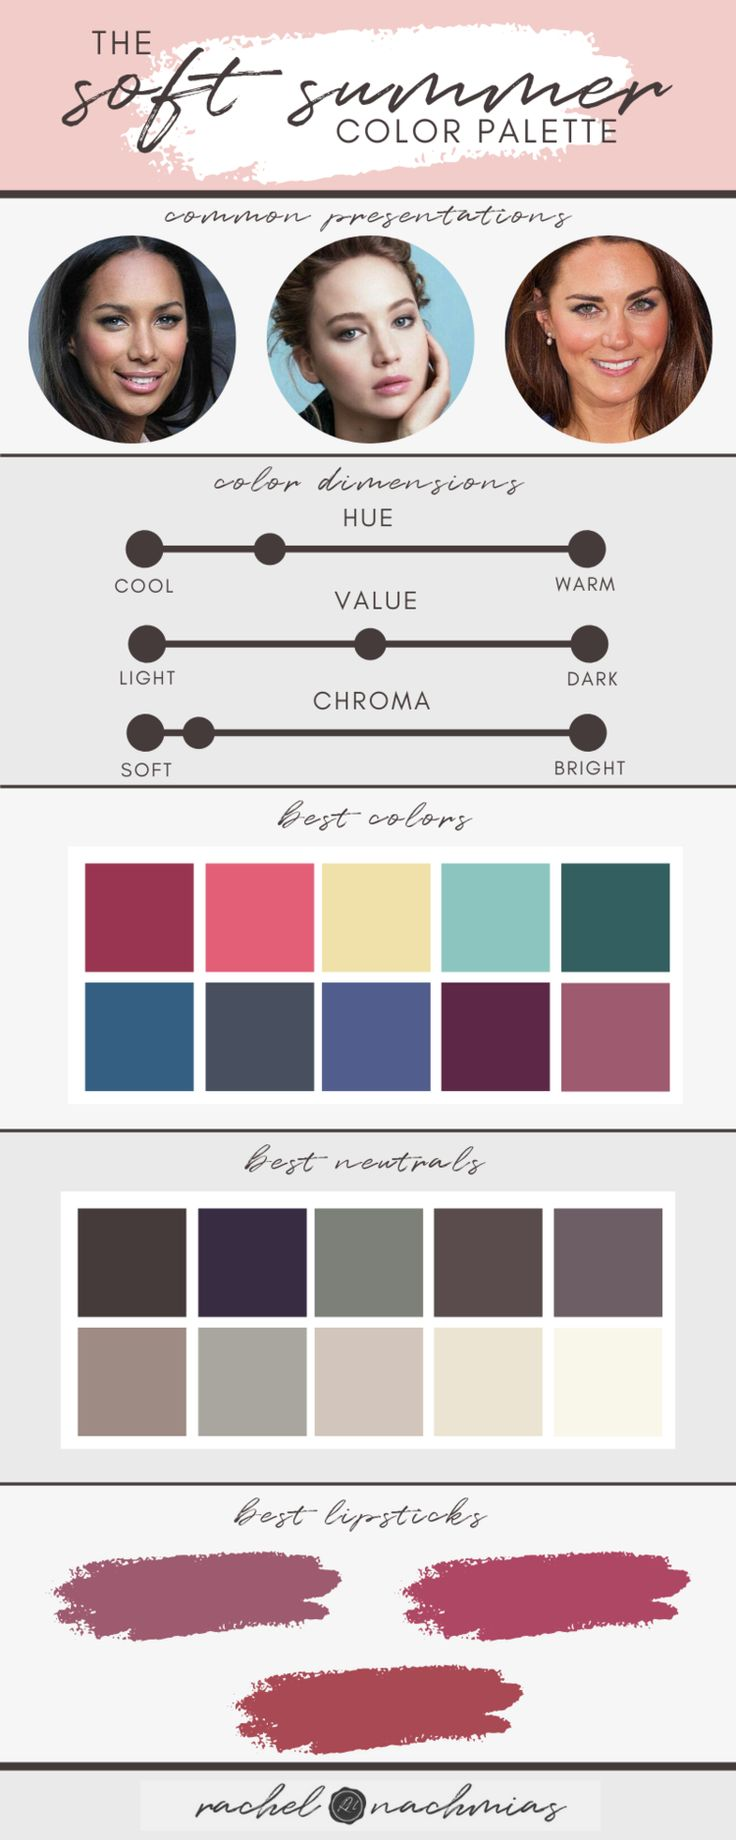 A quick overview of the Soft Summer color palette,…